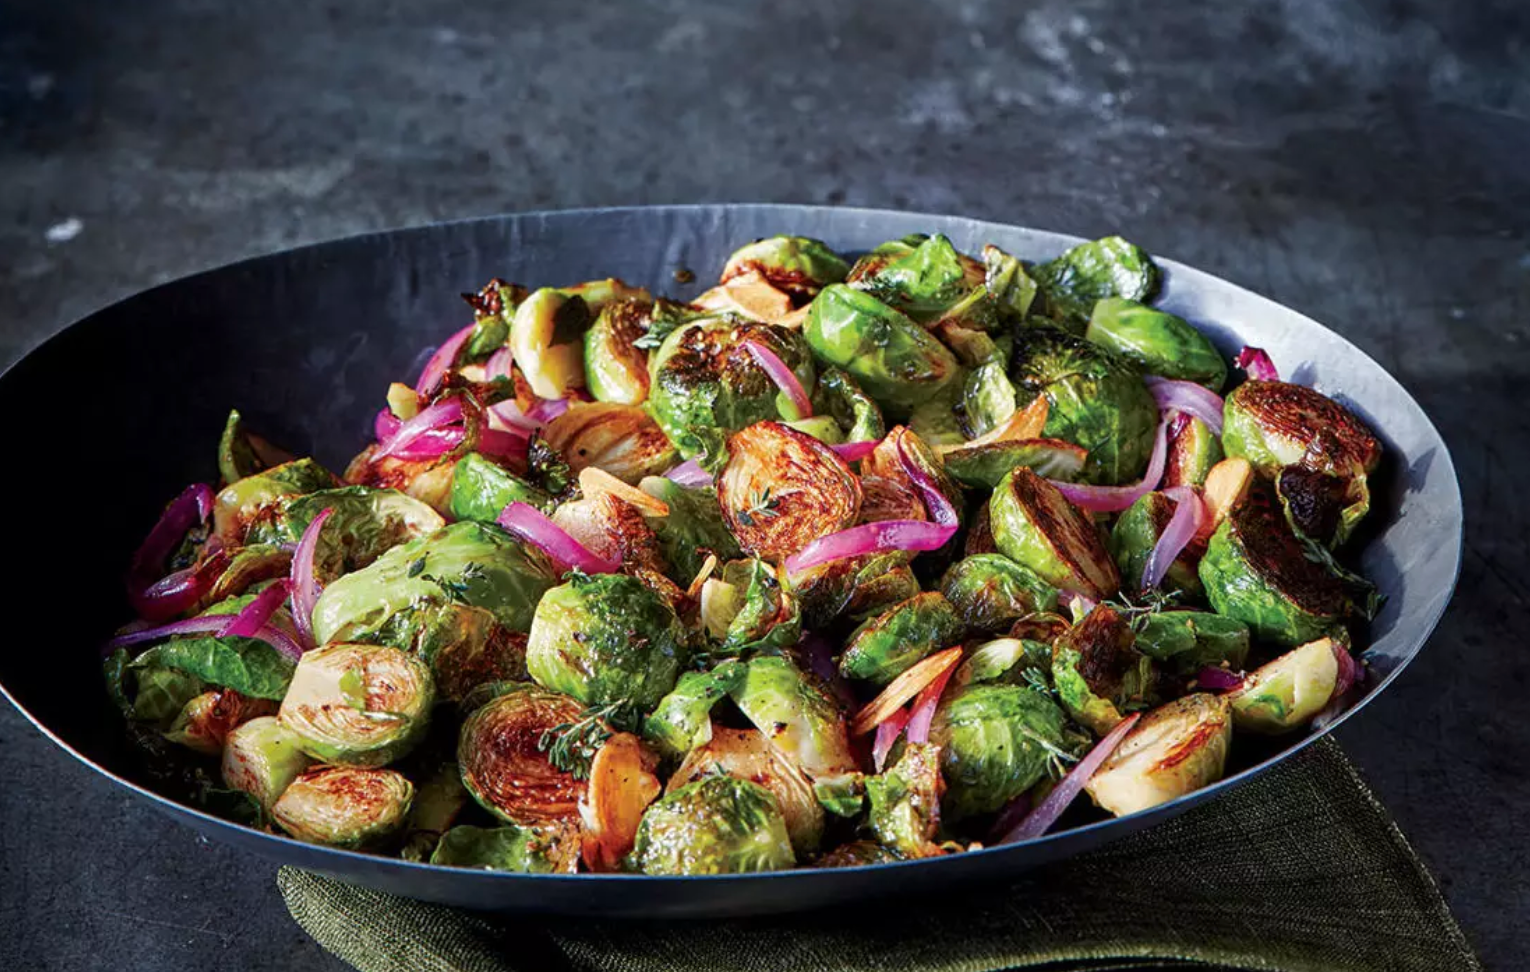 Maple-Caraway Brussels Sprouts from Cooking Light